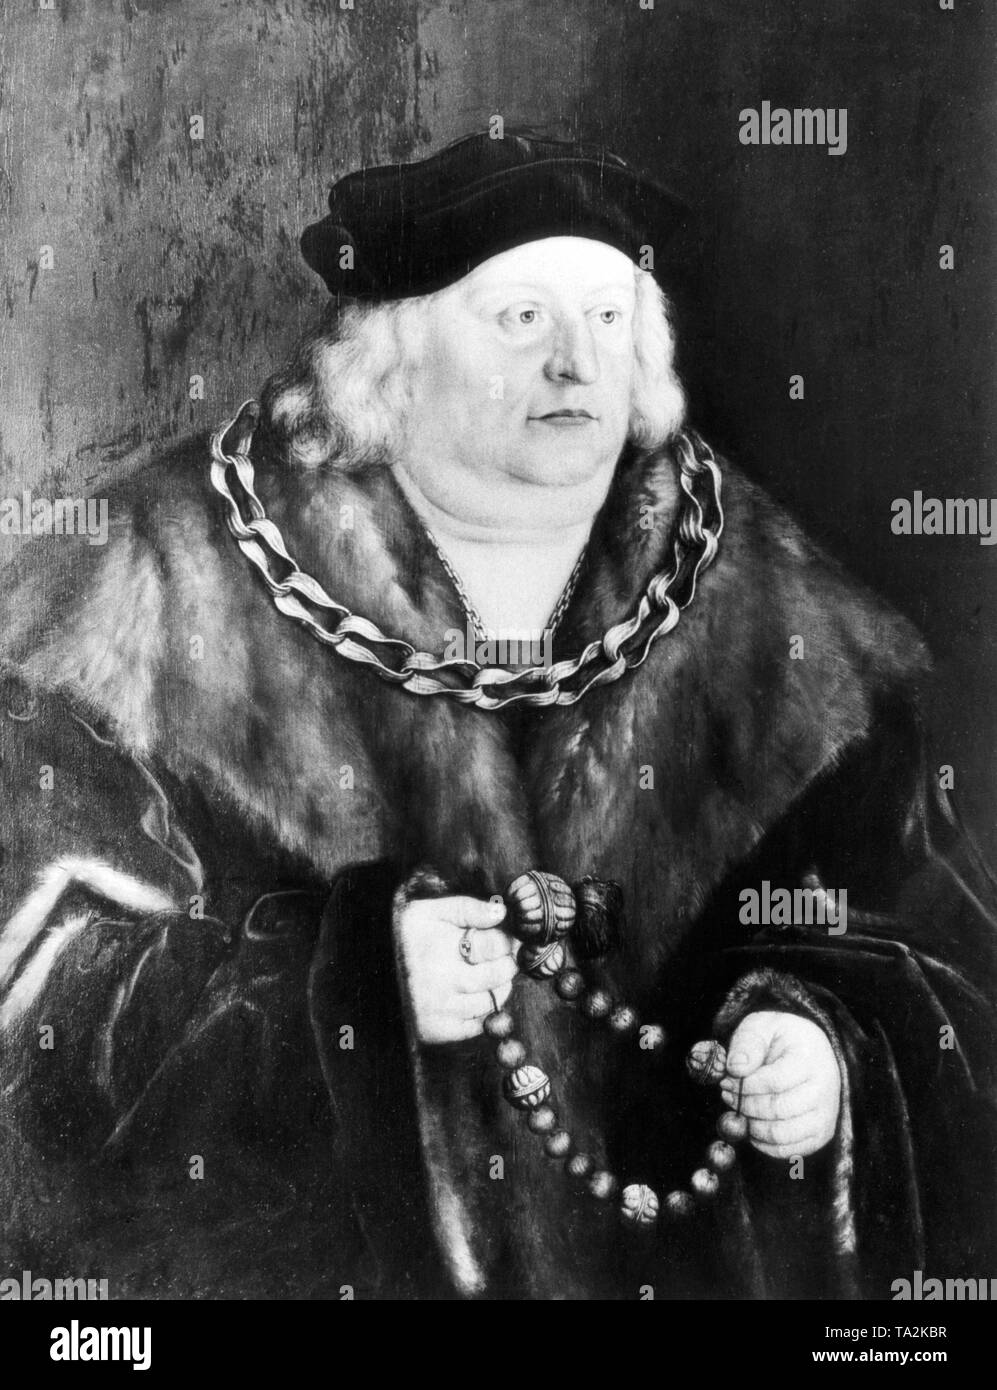 This painting by Barthel Beham depicts the Duke of Bavaria-Munich, Albrecht IV 'The Wise'. Albrecht issued the so-called Primogeniturgesetz (primogeniture law) that stipulated the indivisibility of the Duchy of Bavaria. He lived from 1477 to 1508. Undated painting, probably painted in the 1520s. Nowadays it is displayed in the Bavarian State Painting Collections. - Stock Image